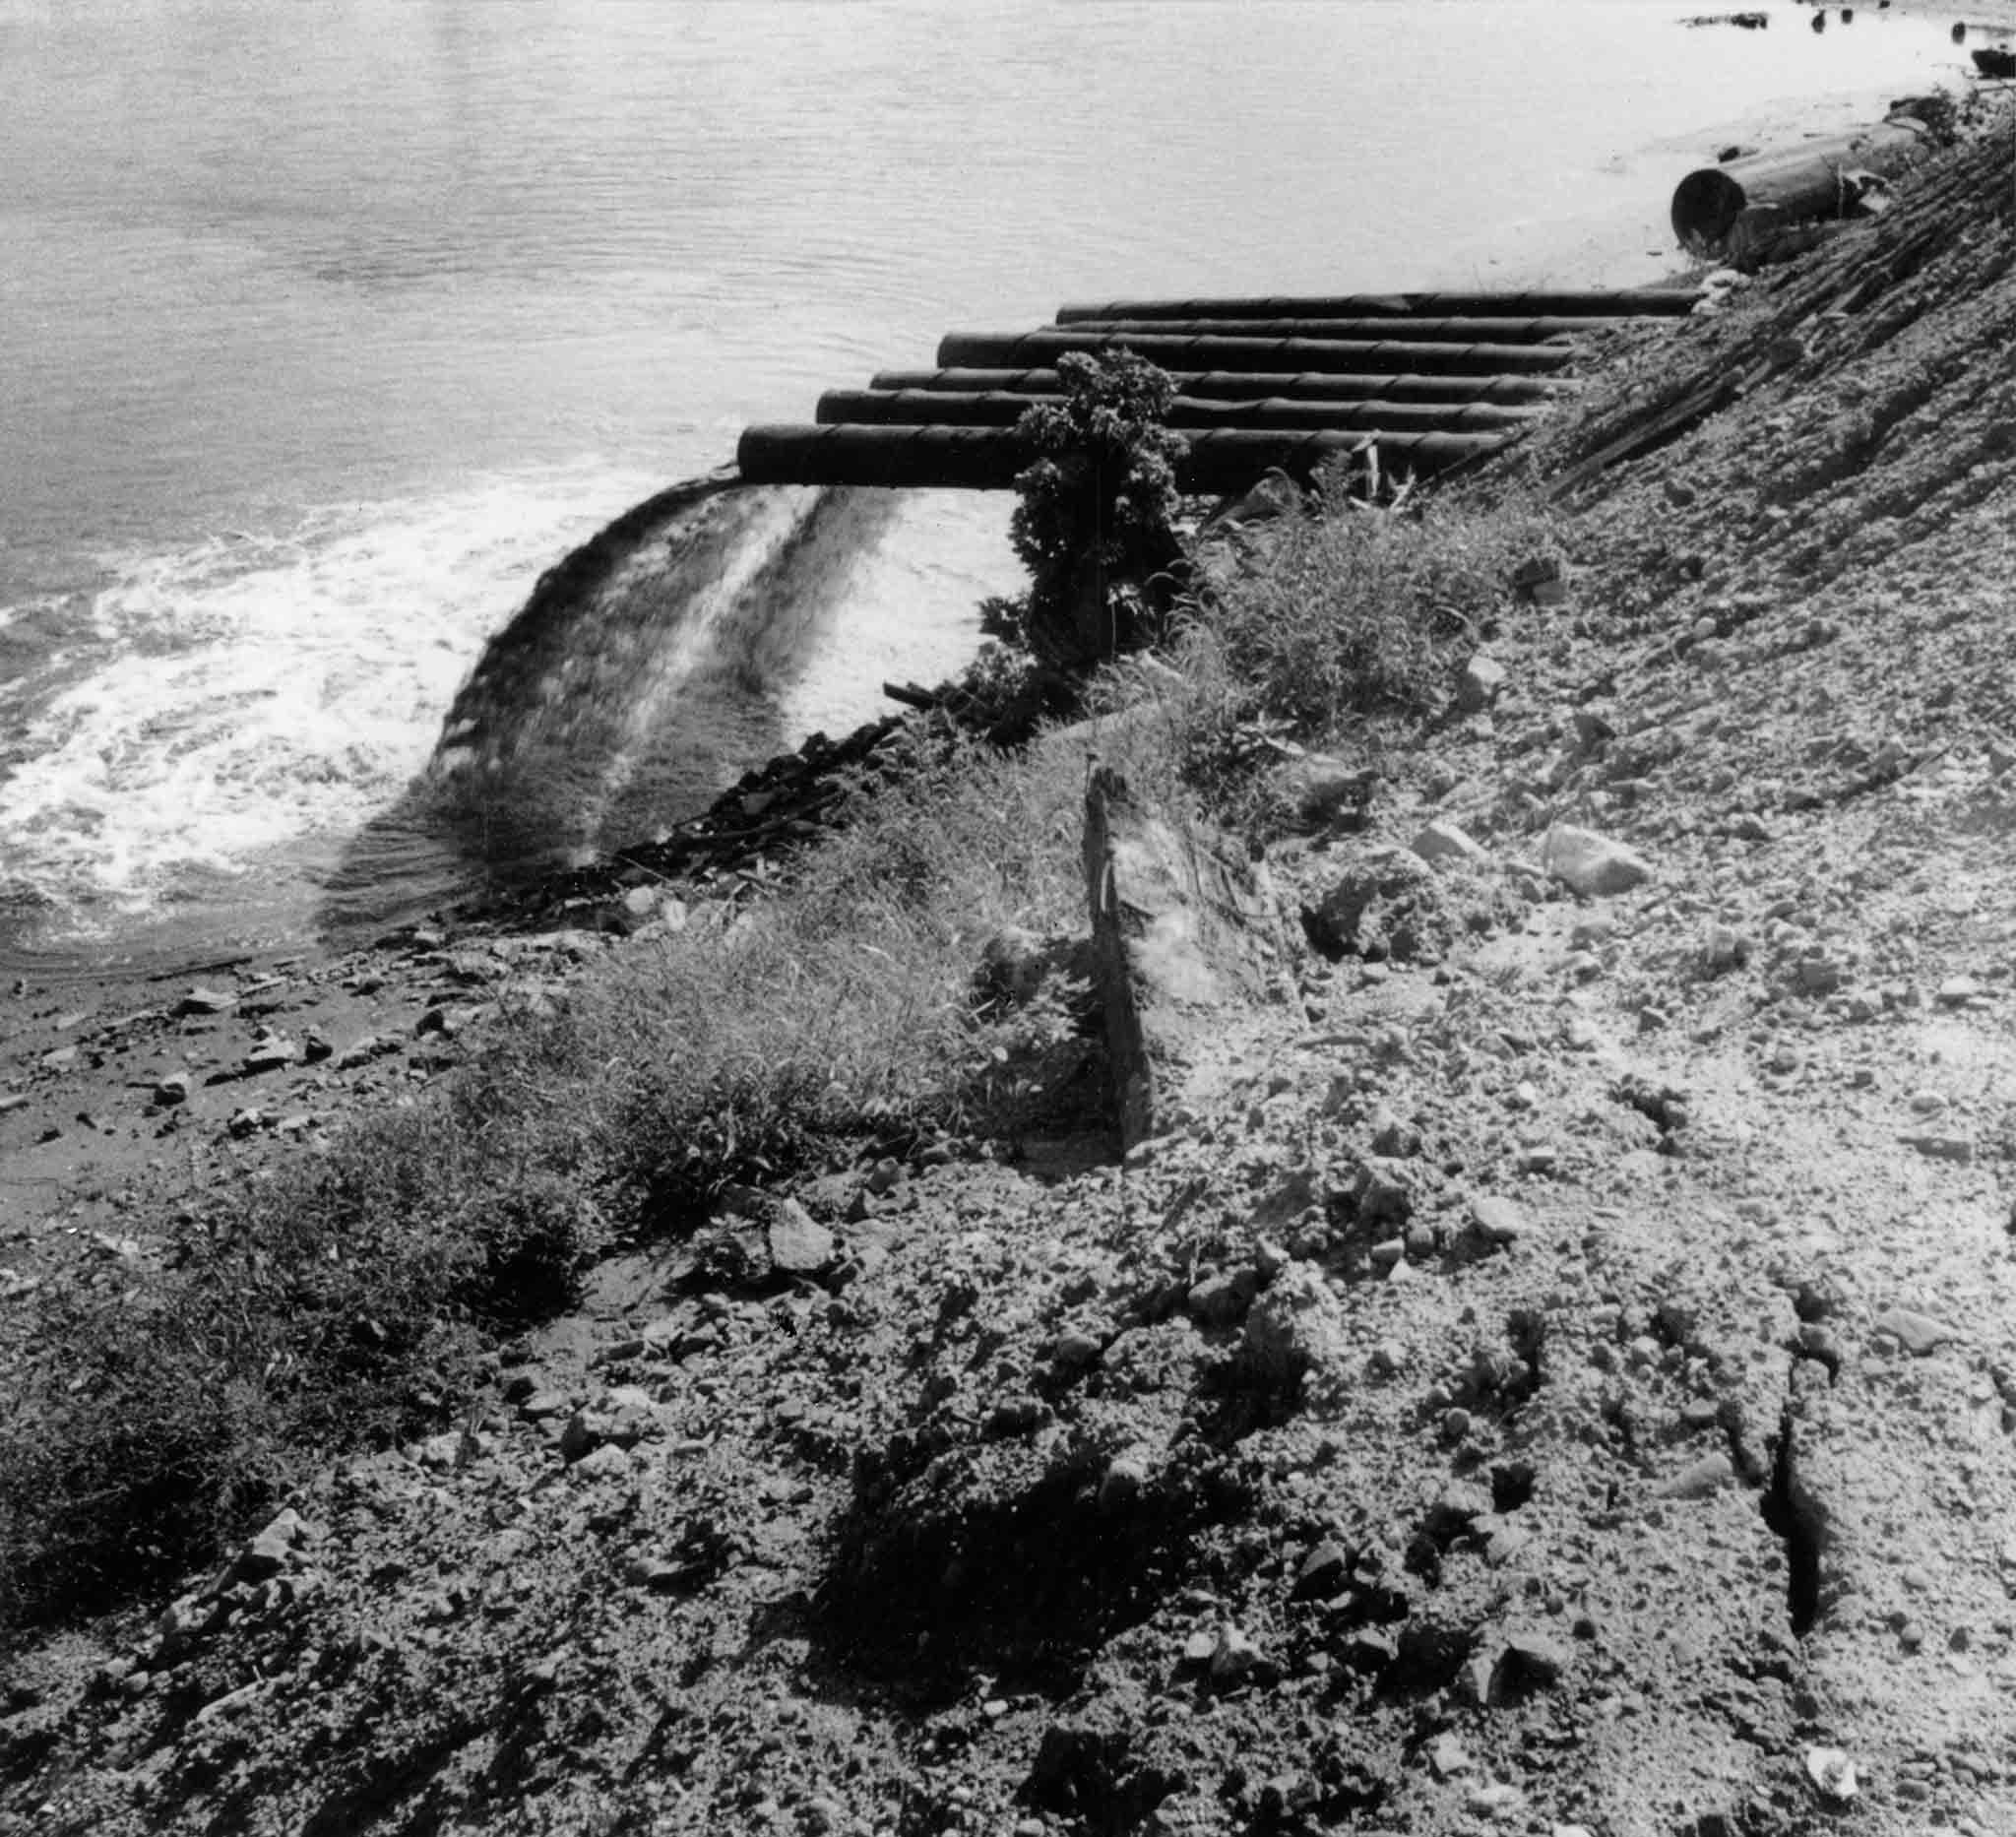 black and white image of several pipe jutting out of an earthen bank and dumping water into a body of water